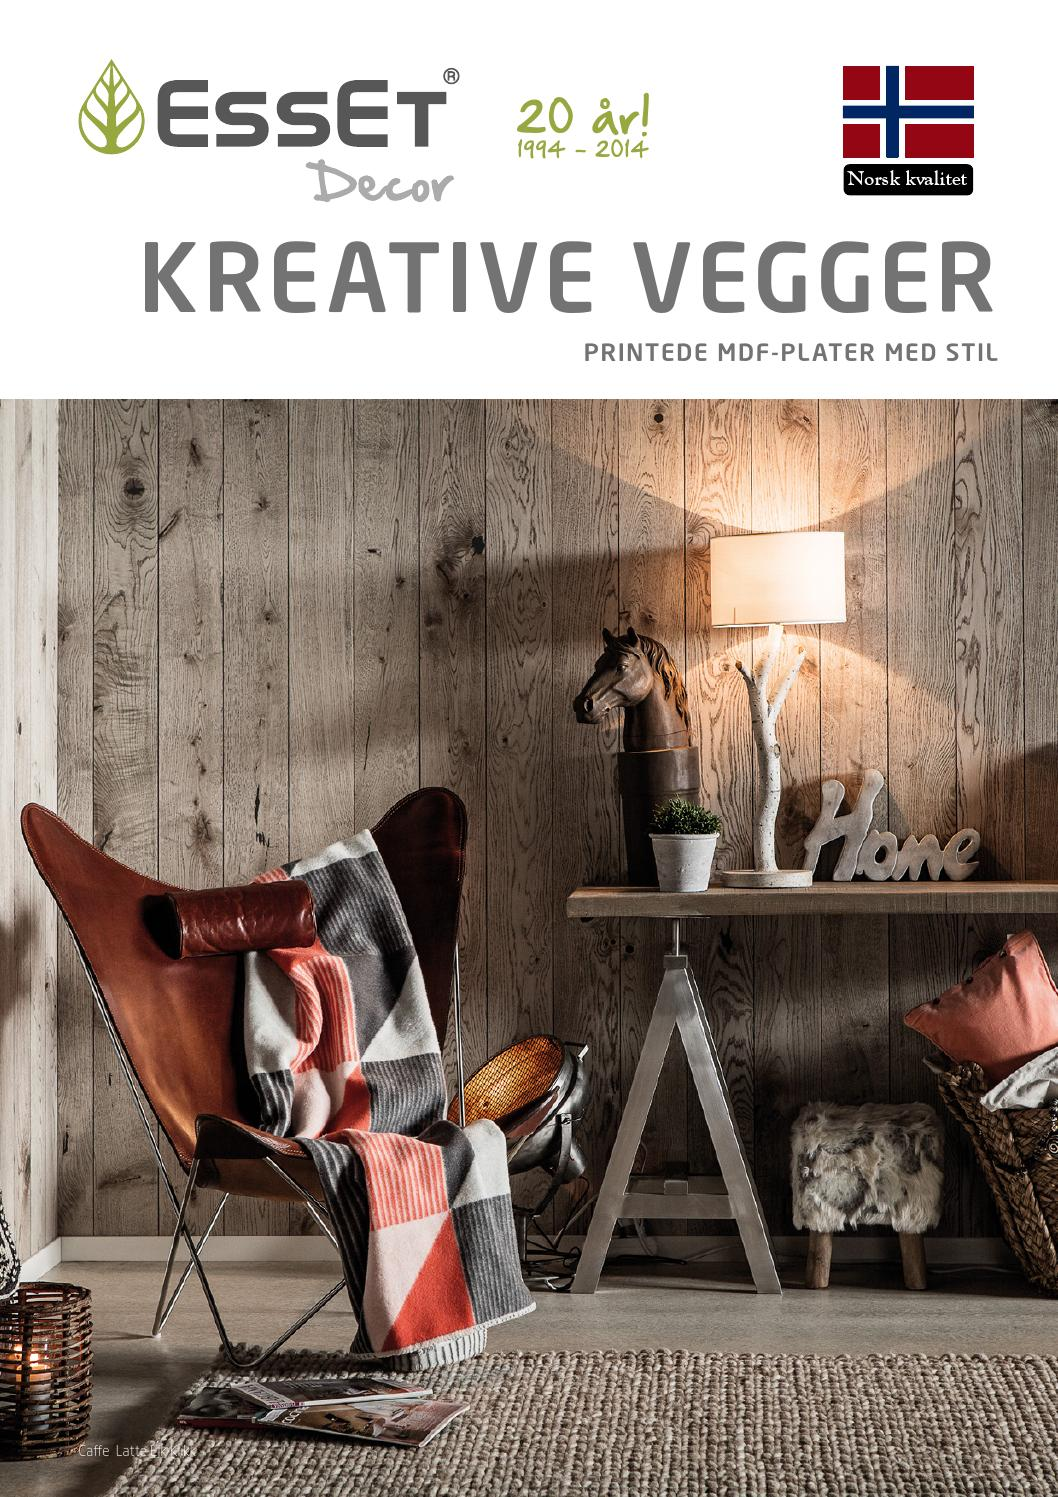 Plater Interiør Veggpanel Esset Decor Kreative Vegger By Haakon Sundbø Issuu